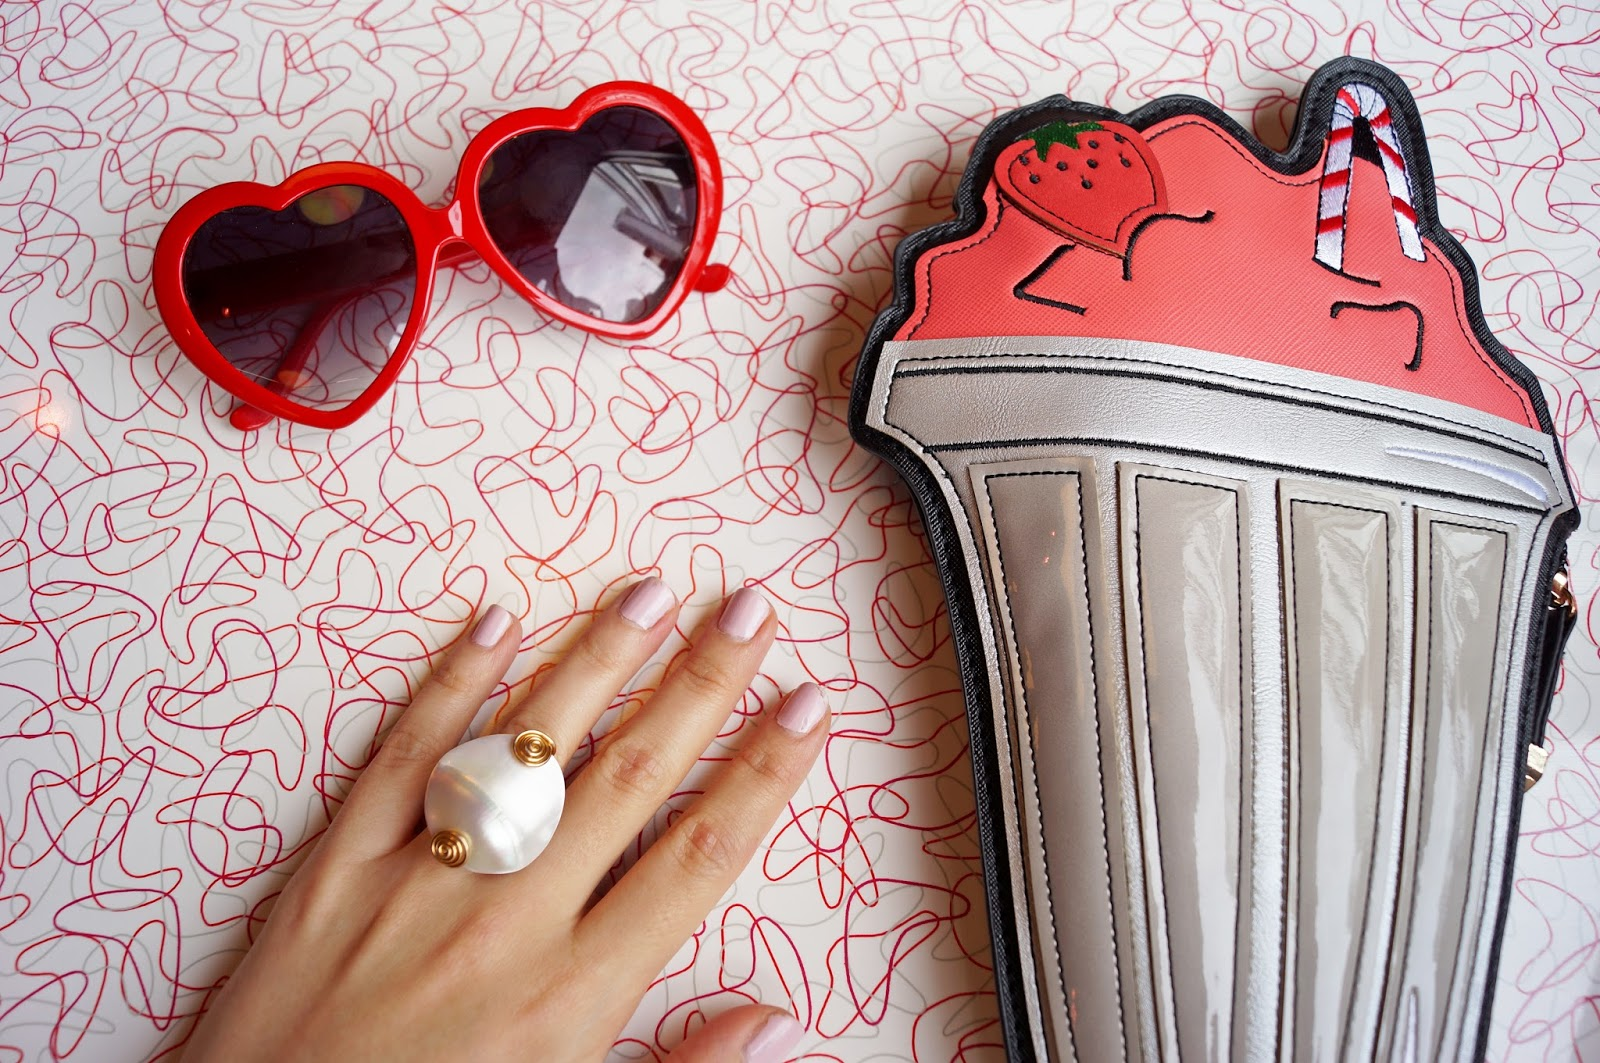 This milkshake clutch is super cute!!